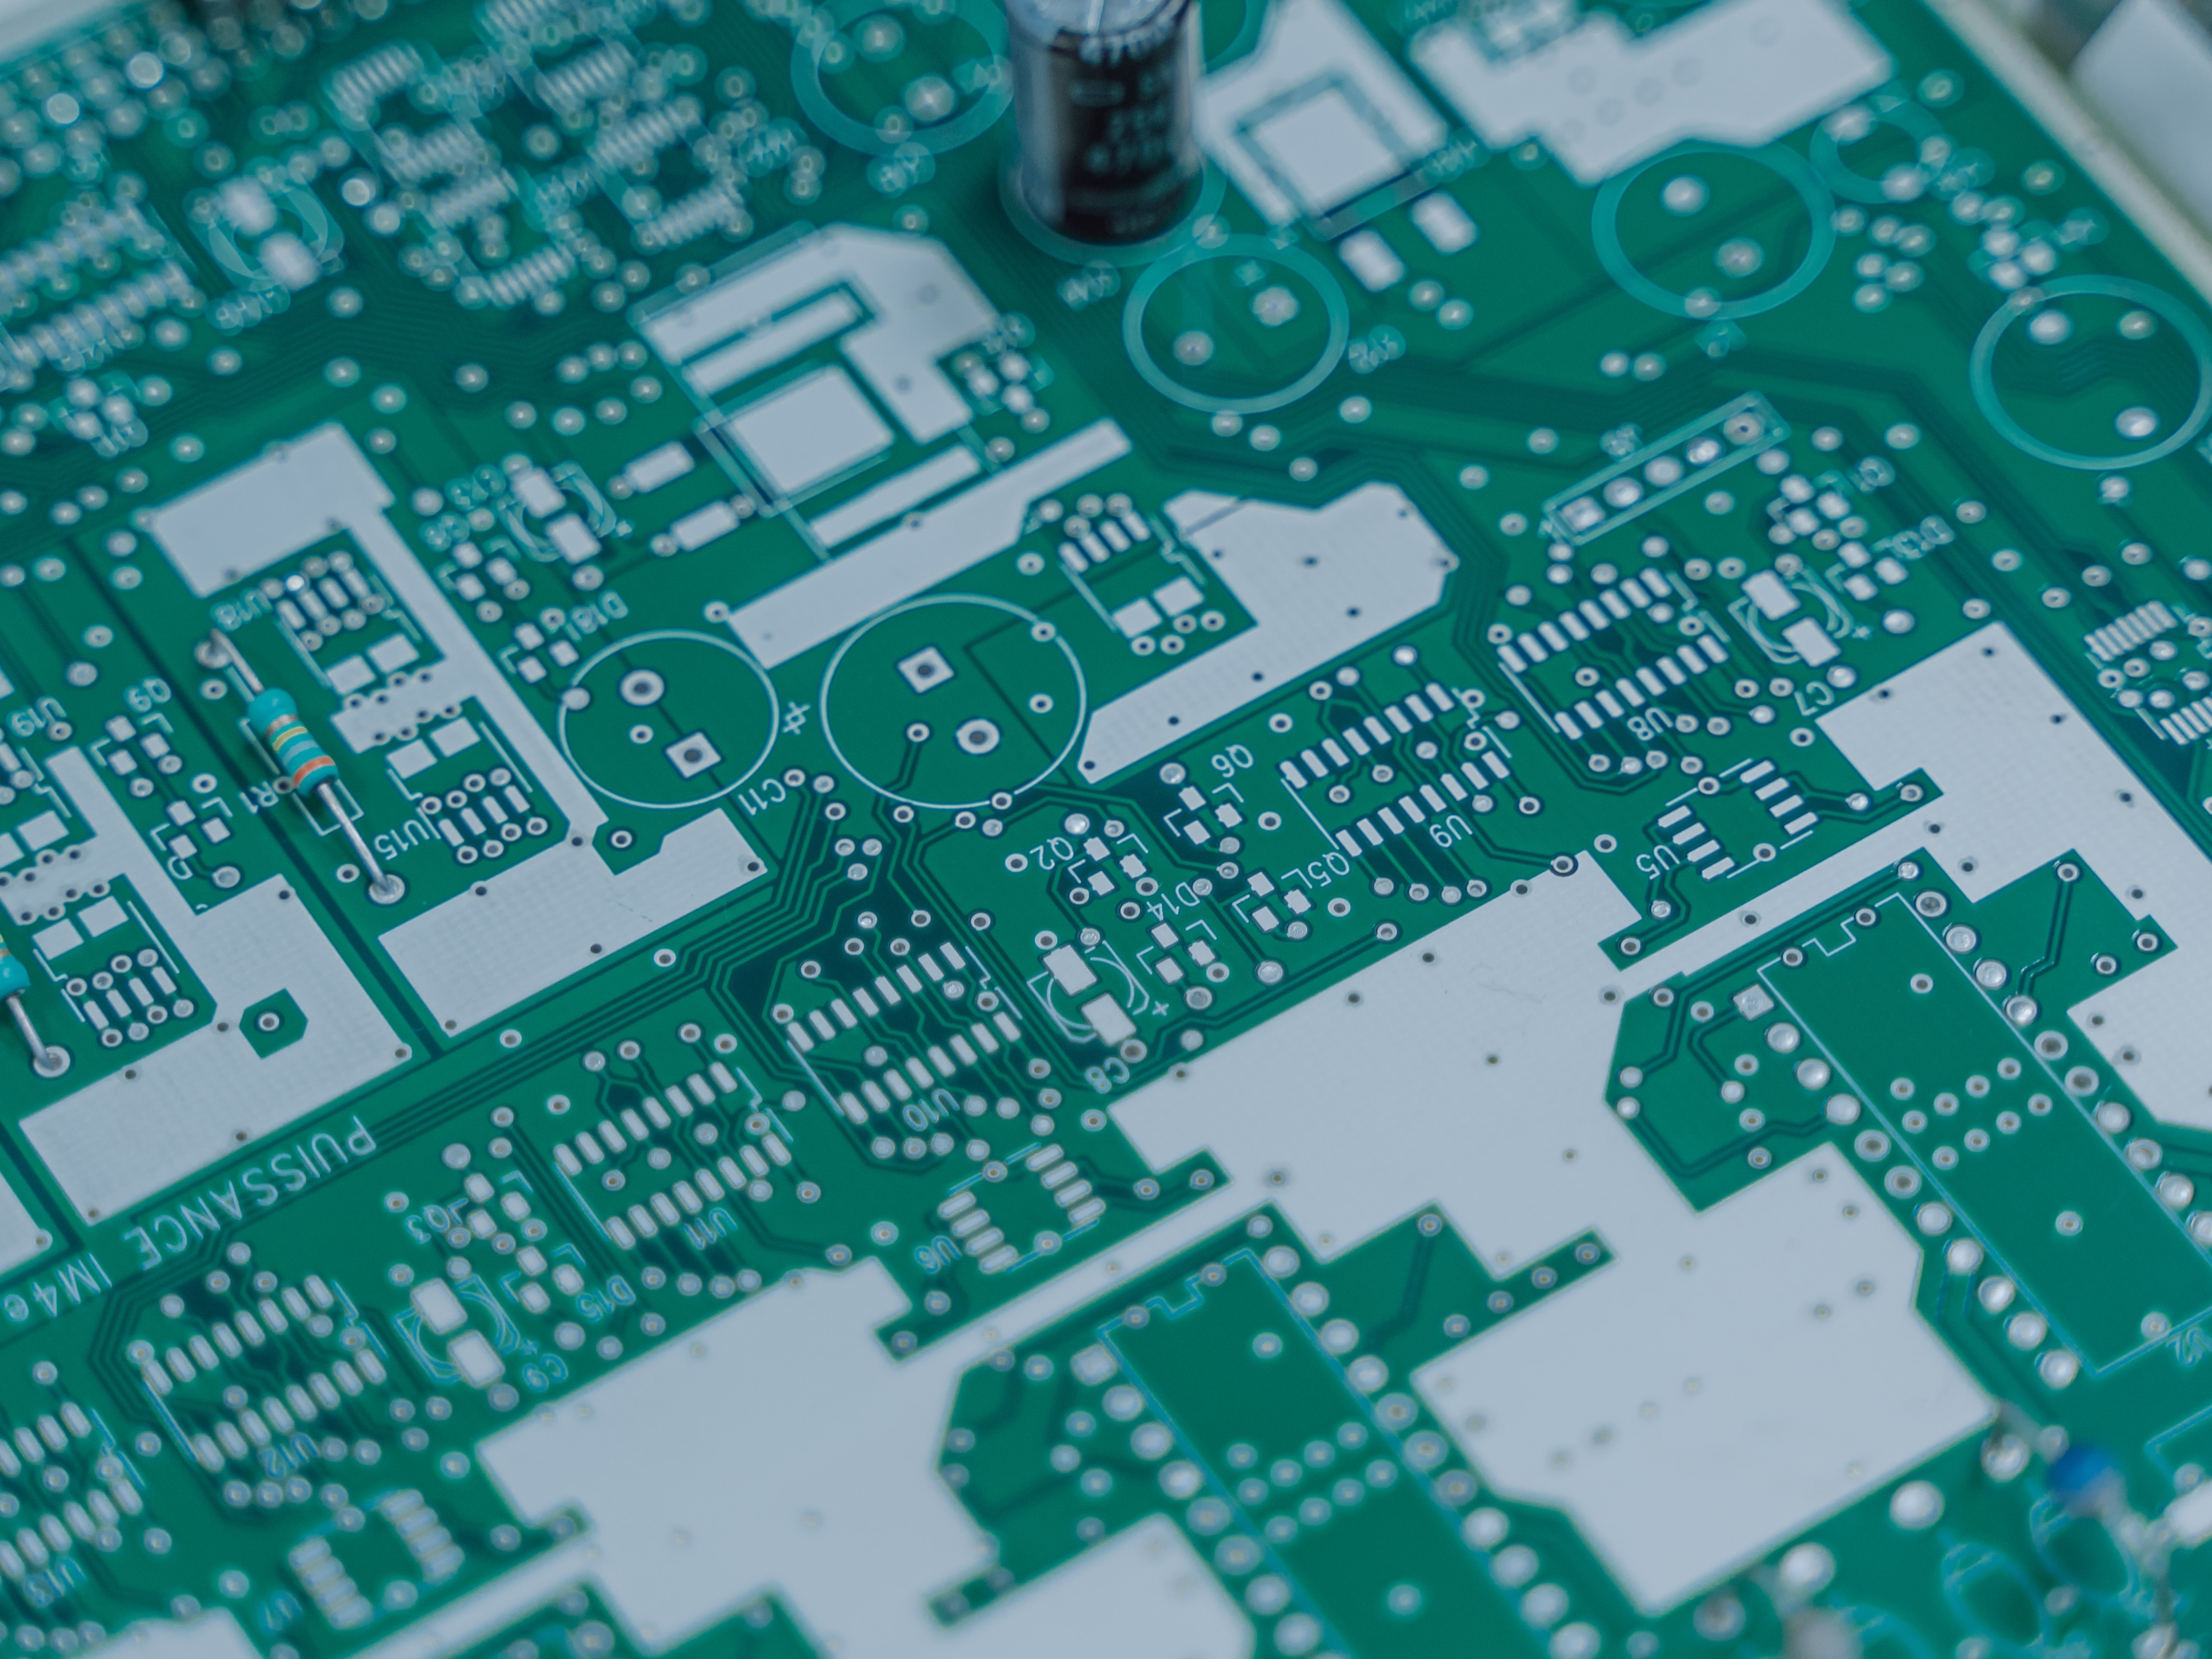 Microelectronics -- new or old? Image credit: Unsplash/ Florian Olivo